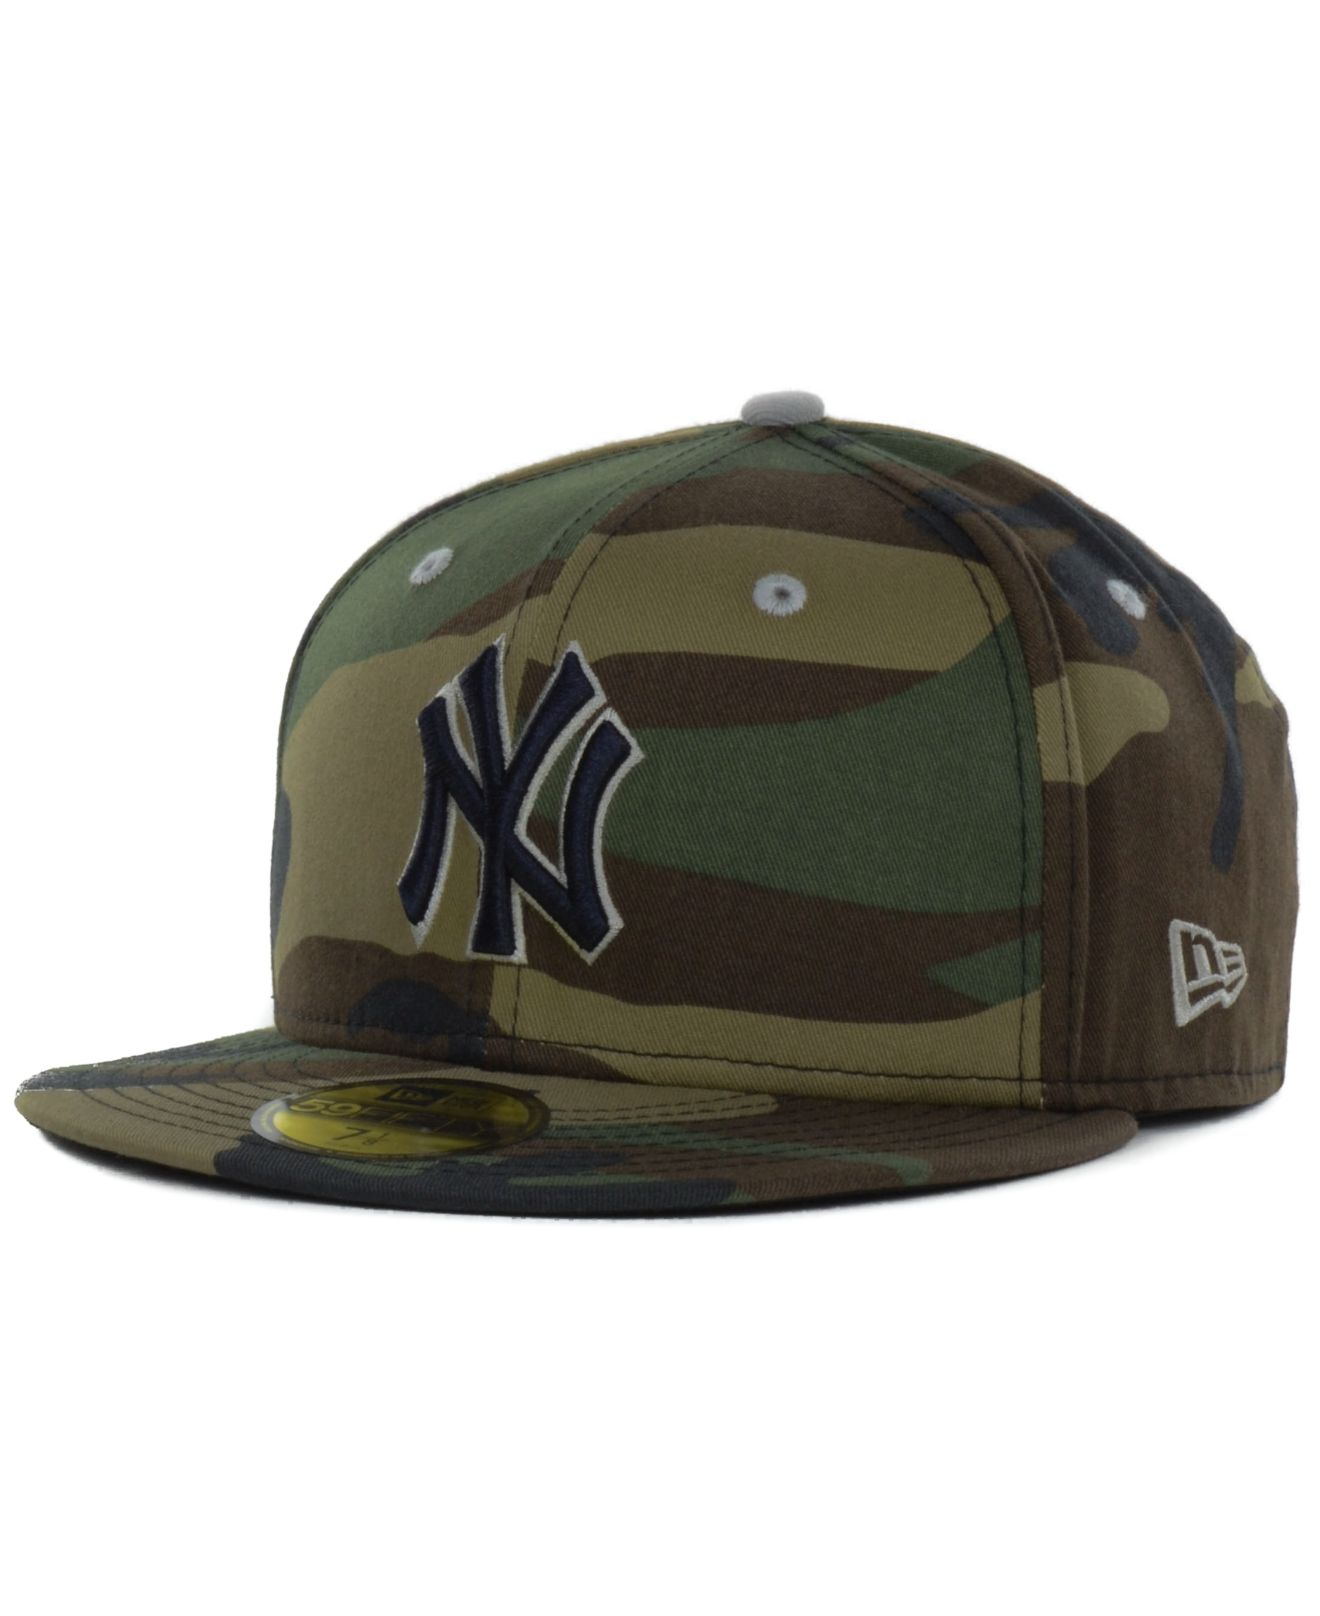 info for e8181 62d90 promo code gorra 9fifty new era n.y. yankees reflective 74ff6 72e73   official store lyst ktz new york yankees mlb camo pop 59fifty cap in green  for men